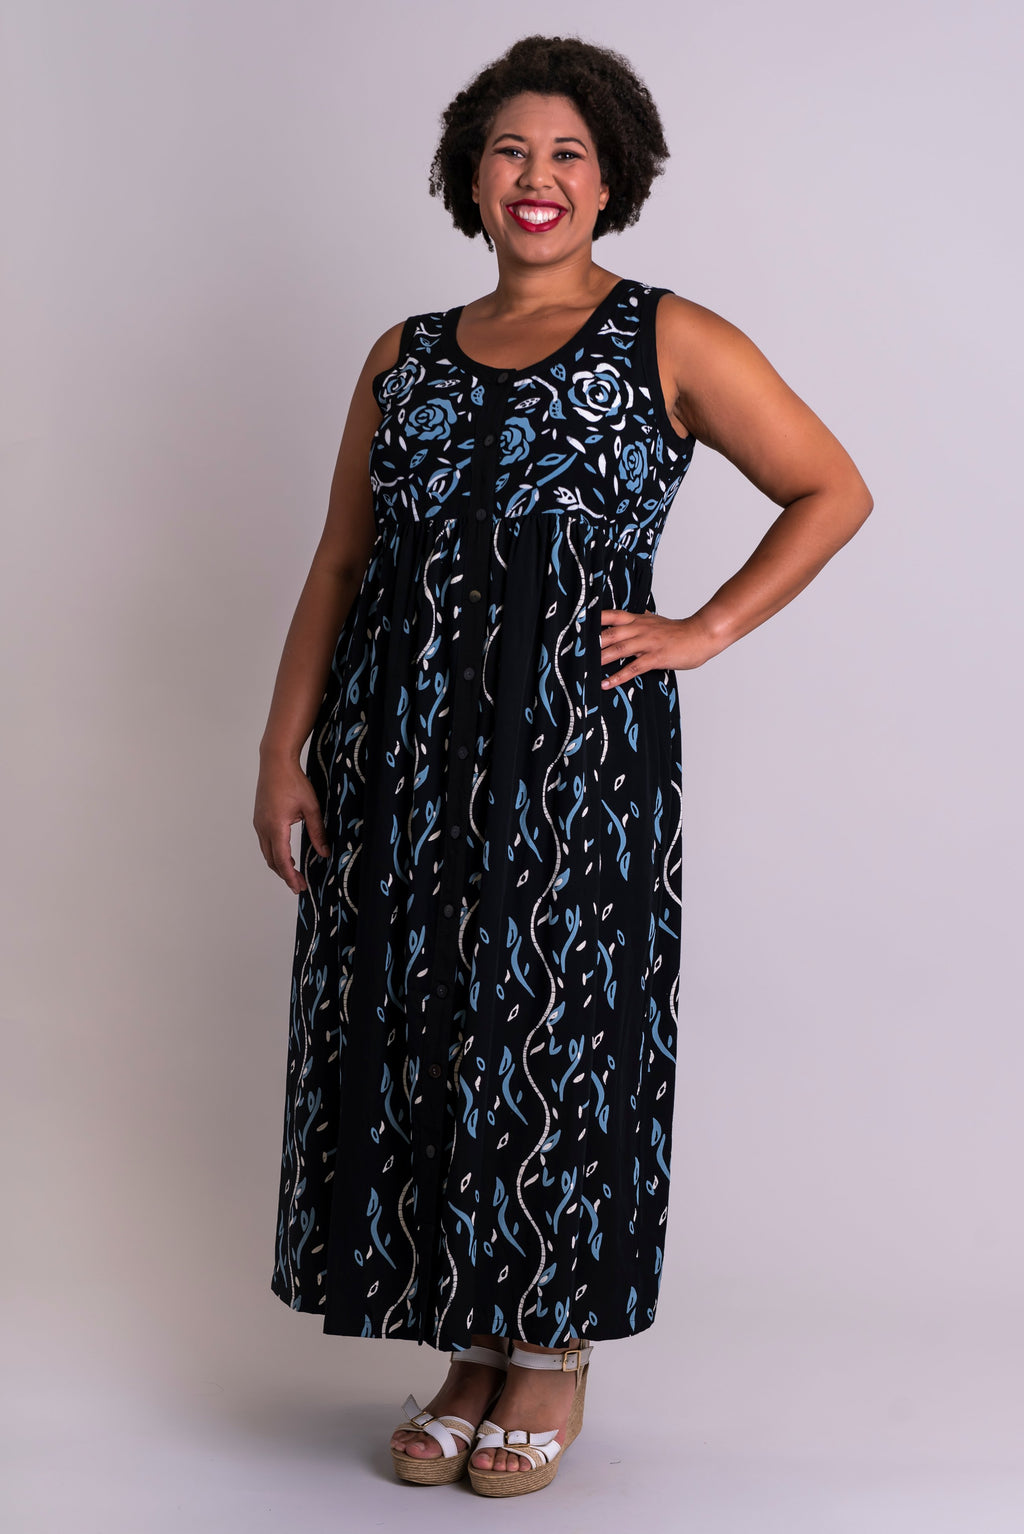 Cleo Dress, White Rose Garden, Batik Art - Blue Sky Clothing Co